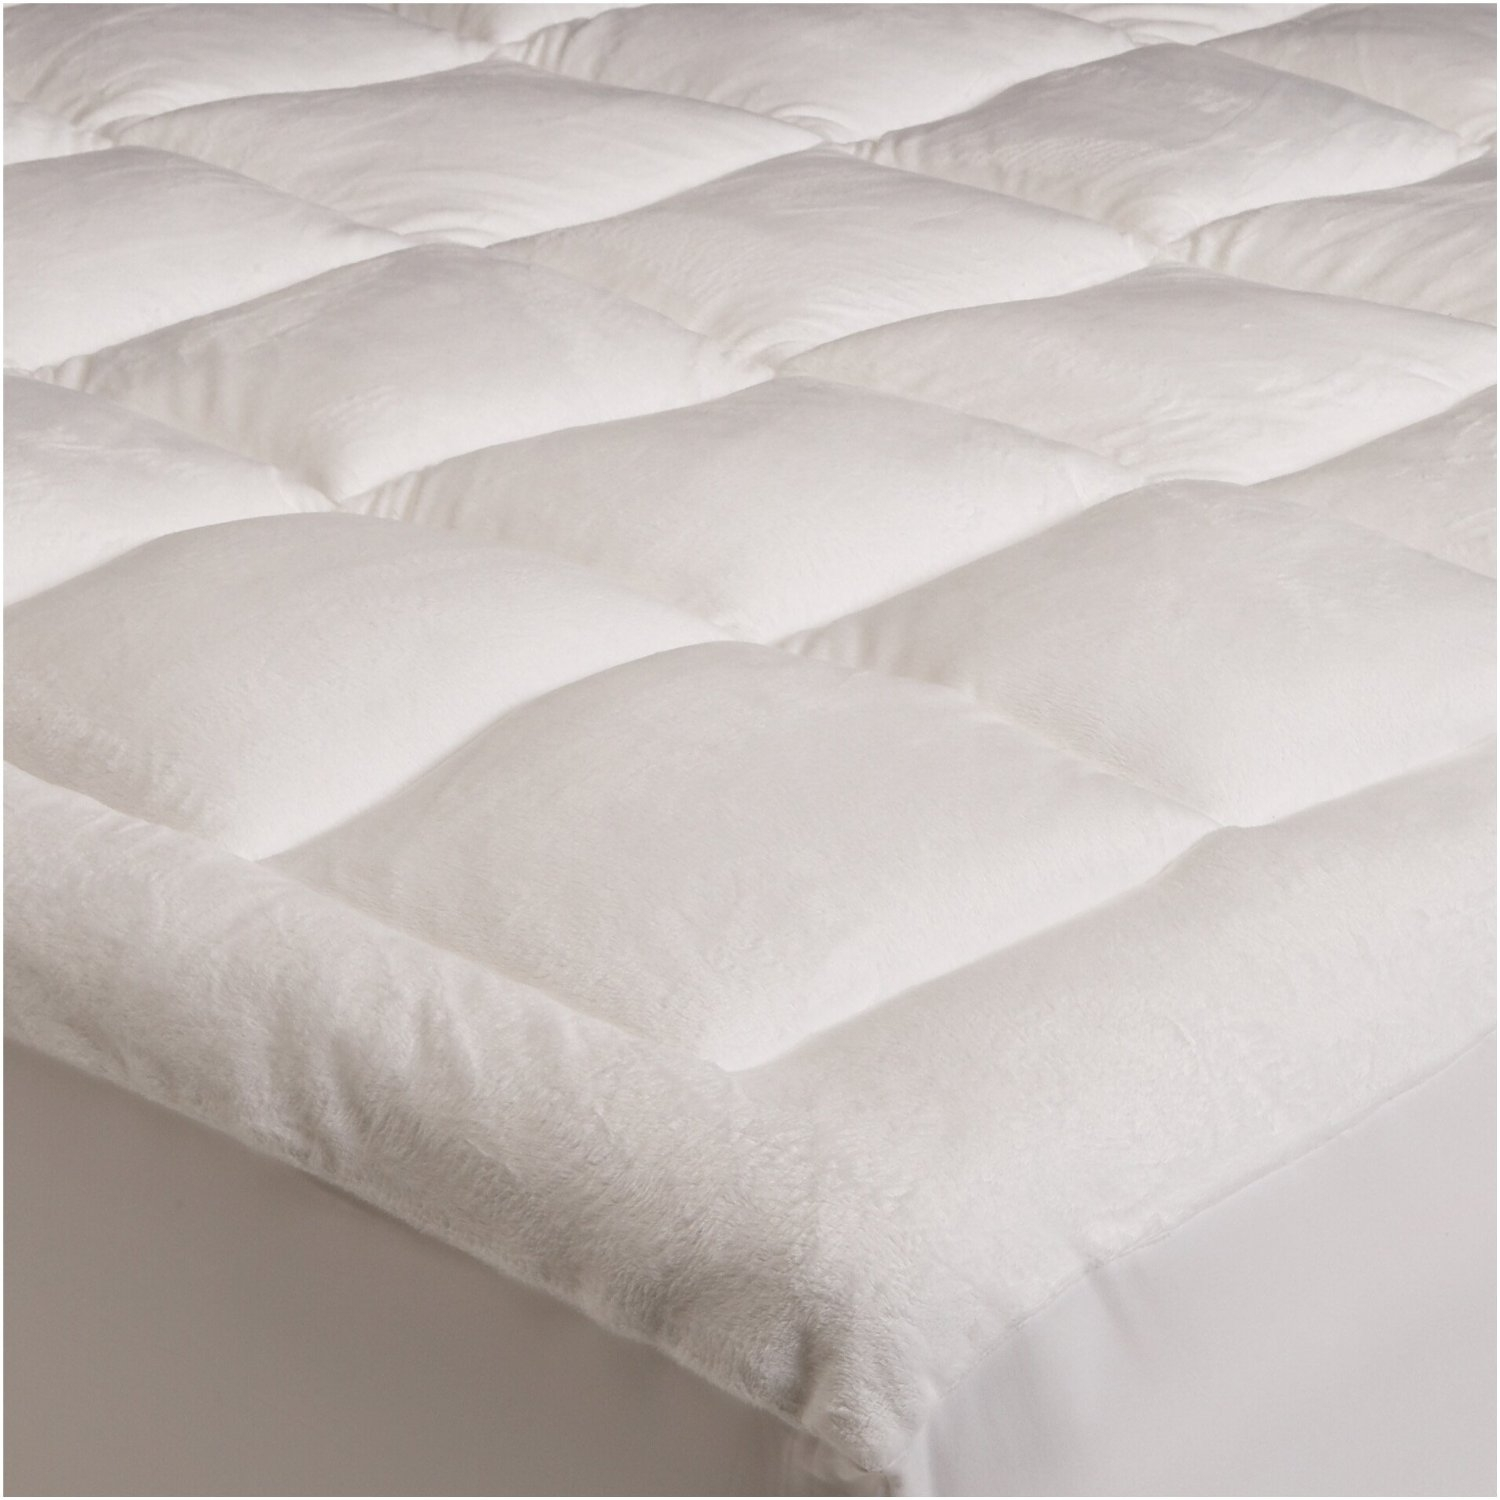 For plush comfort and support, this King size Overfilled Super Soft Microplush Mattress Pad features a blend of generous fill and super-soft fabric. Comparable to down in its softness, the pad is made from microplush fabric and stuffed with 64 ounces of loft-retaining polyester fill. An end-to-end box stitch design ensures even distribution of the fill, and mitered borders prevent shifting and flat spots. Sewn with deep pockets and a fully elasticized edge, the pad doubles as a mattress topper and a mattress protector, and it fits deep mattresses like pillow-tops. Comes in a choice of sizes for outfitting every bed in house. The King-size pad is imported and measures 78 by 80 inches. For best results we recommend professional washing/cleaning or Dry Clean Only